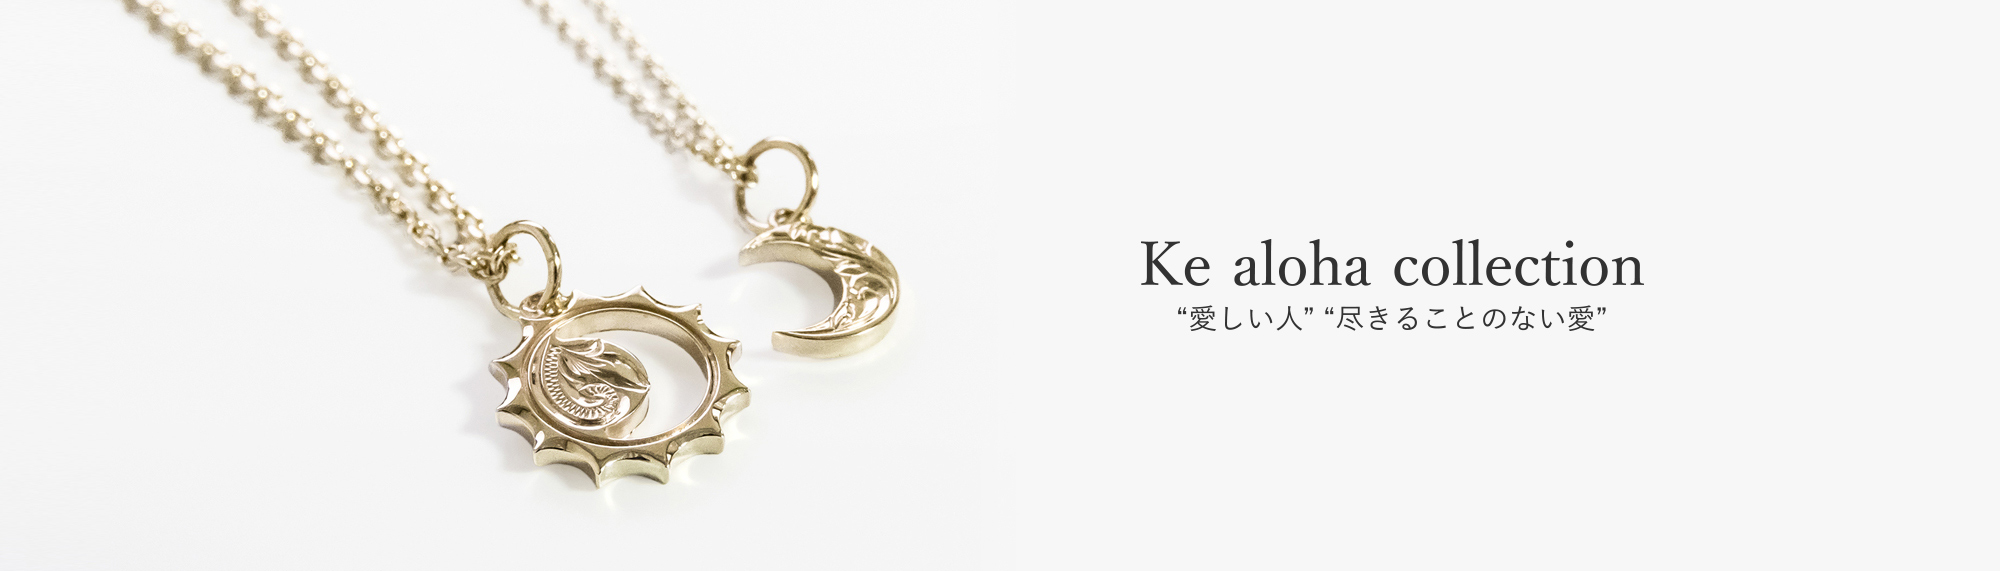 Ke aloha collection